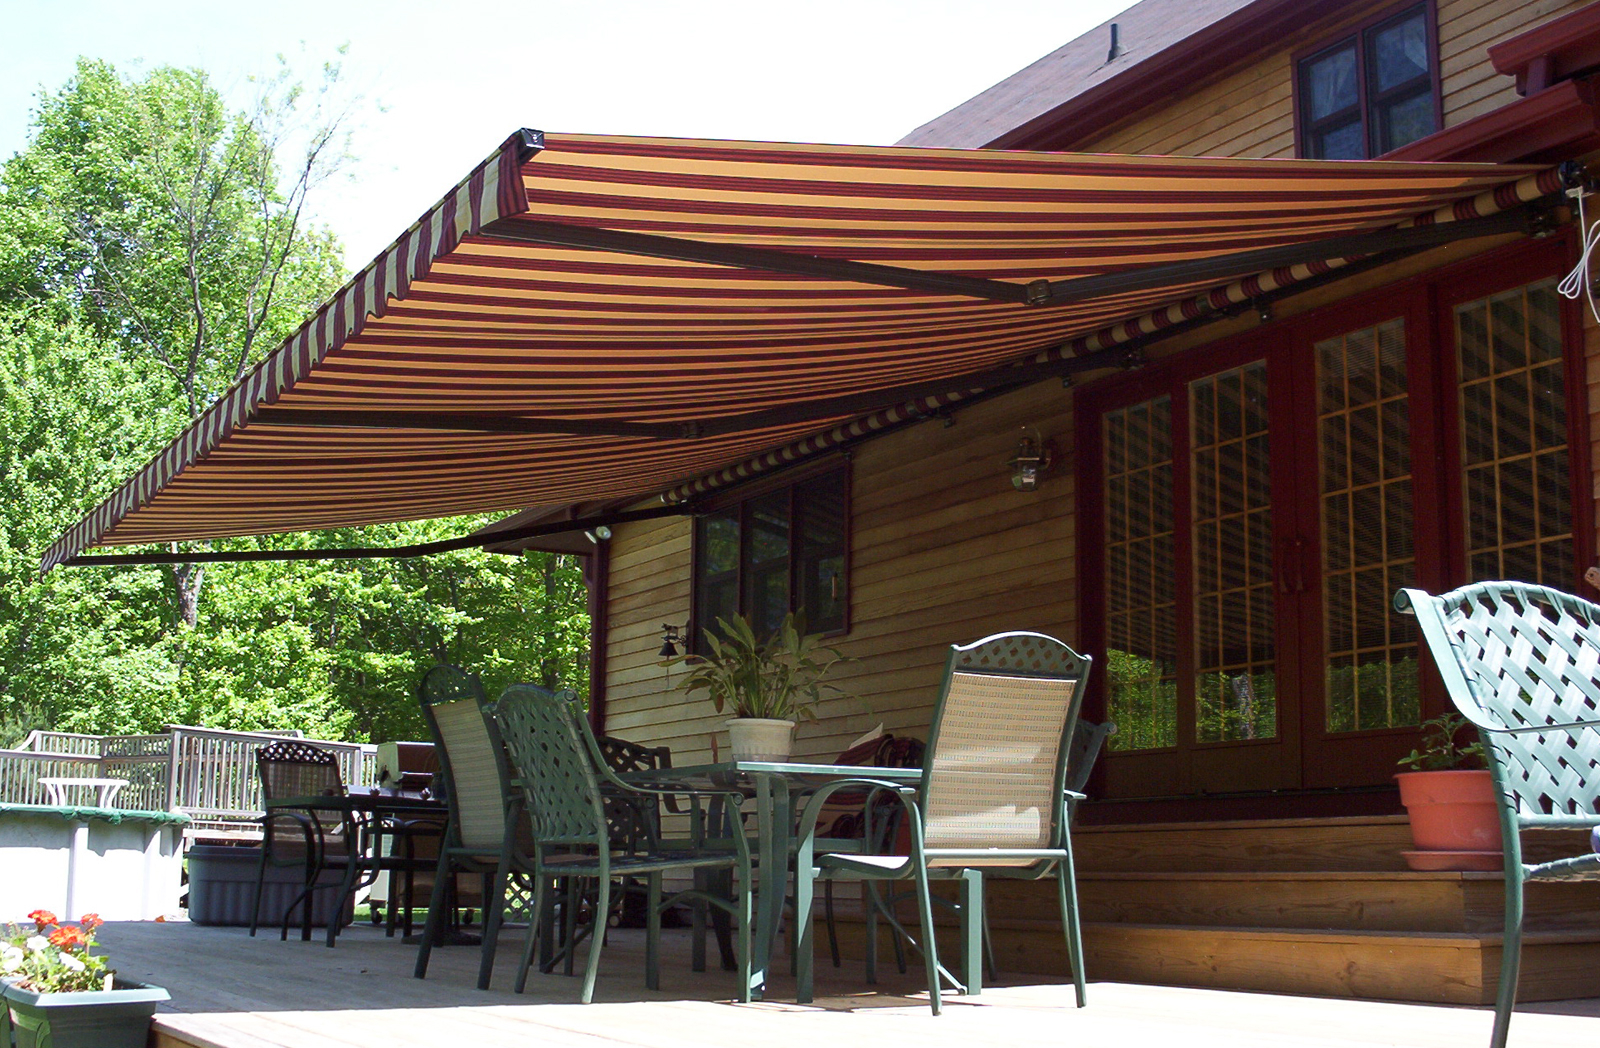 brooklyn our check protect awning enjoy investment lengthen a from cassette your added further security awnings that out helps installation feature of warehouse and the life